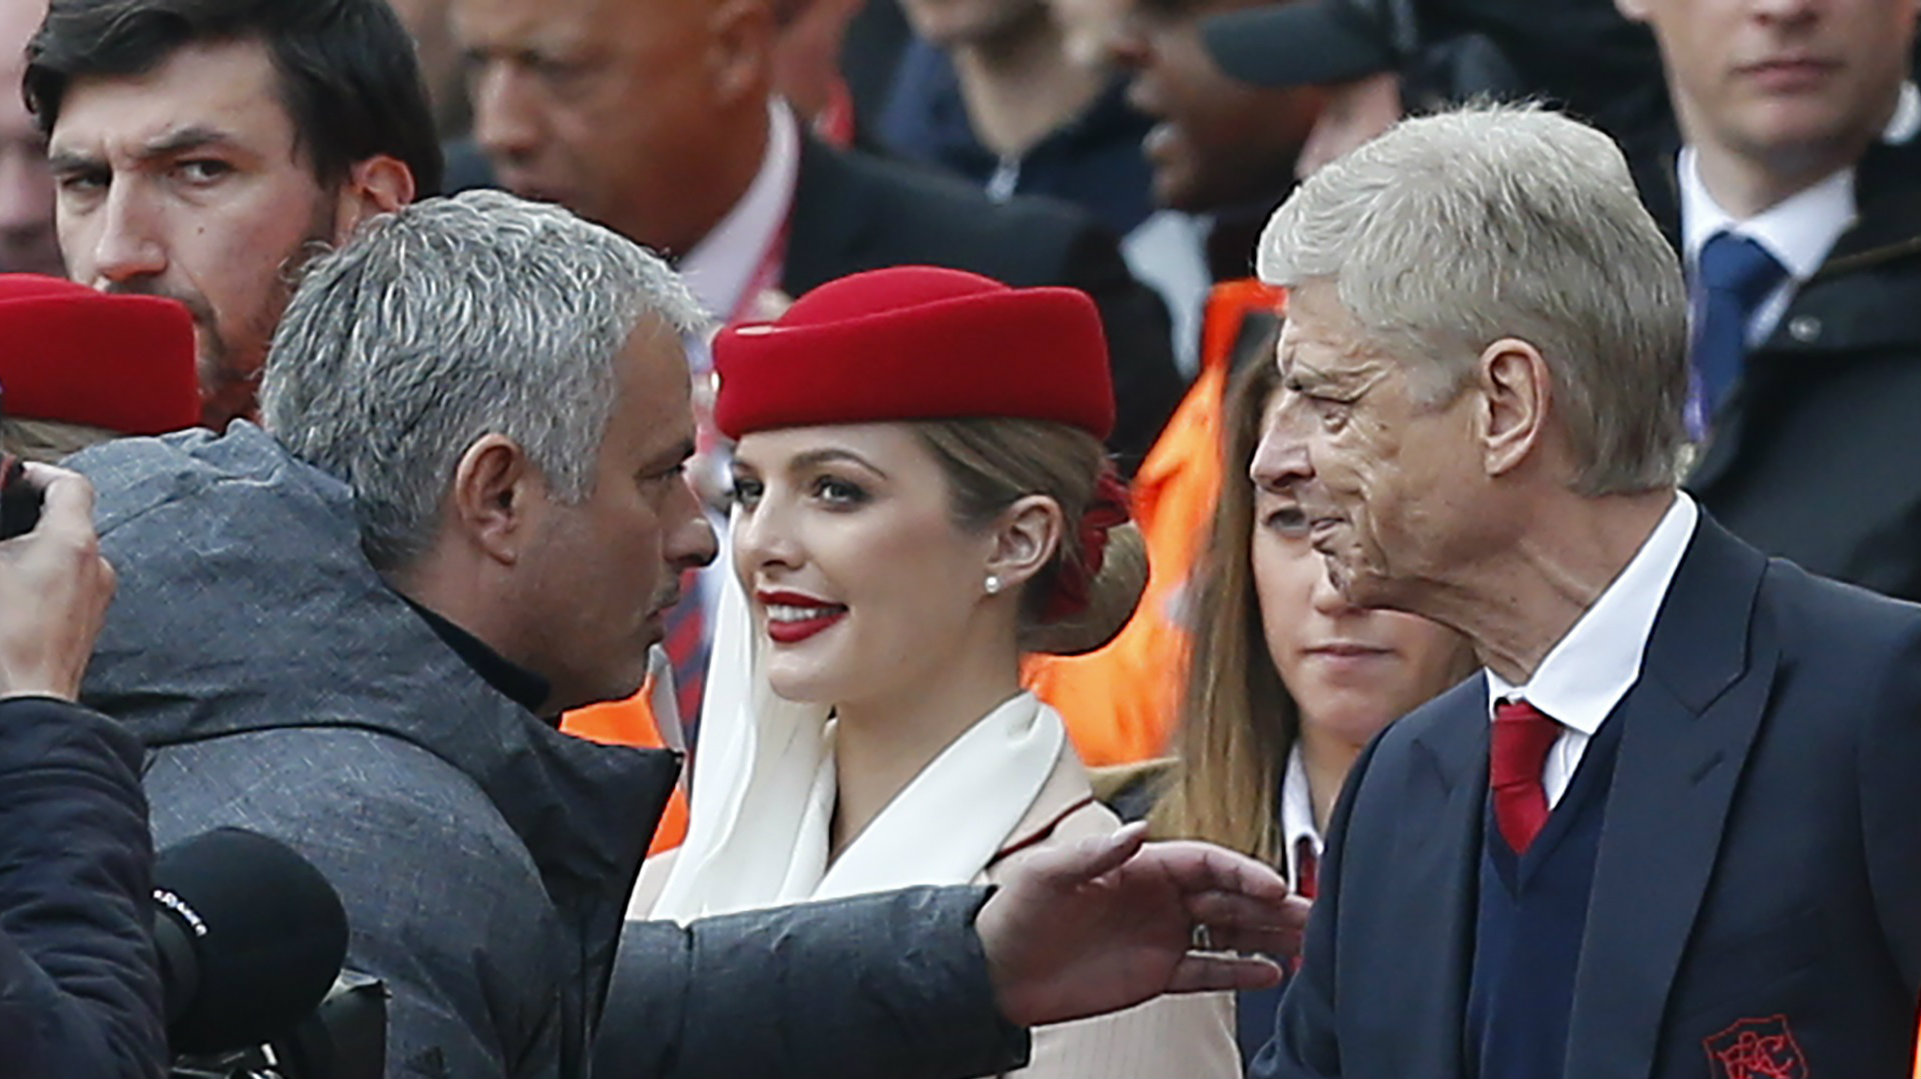 Wenger focuses on Arsenal win rather than Mourinho